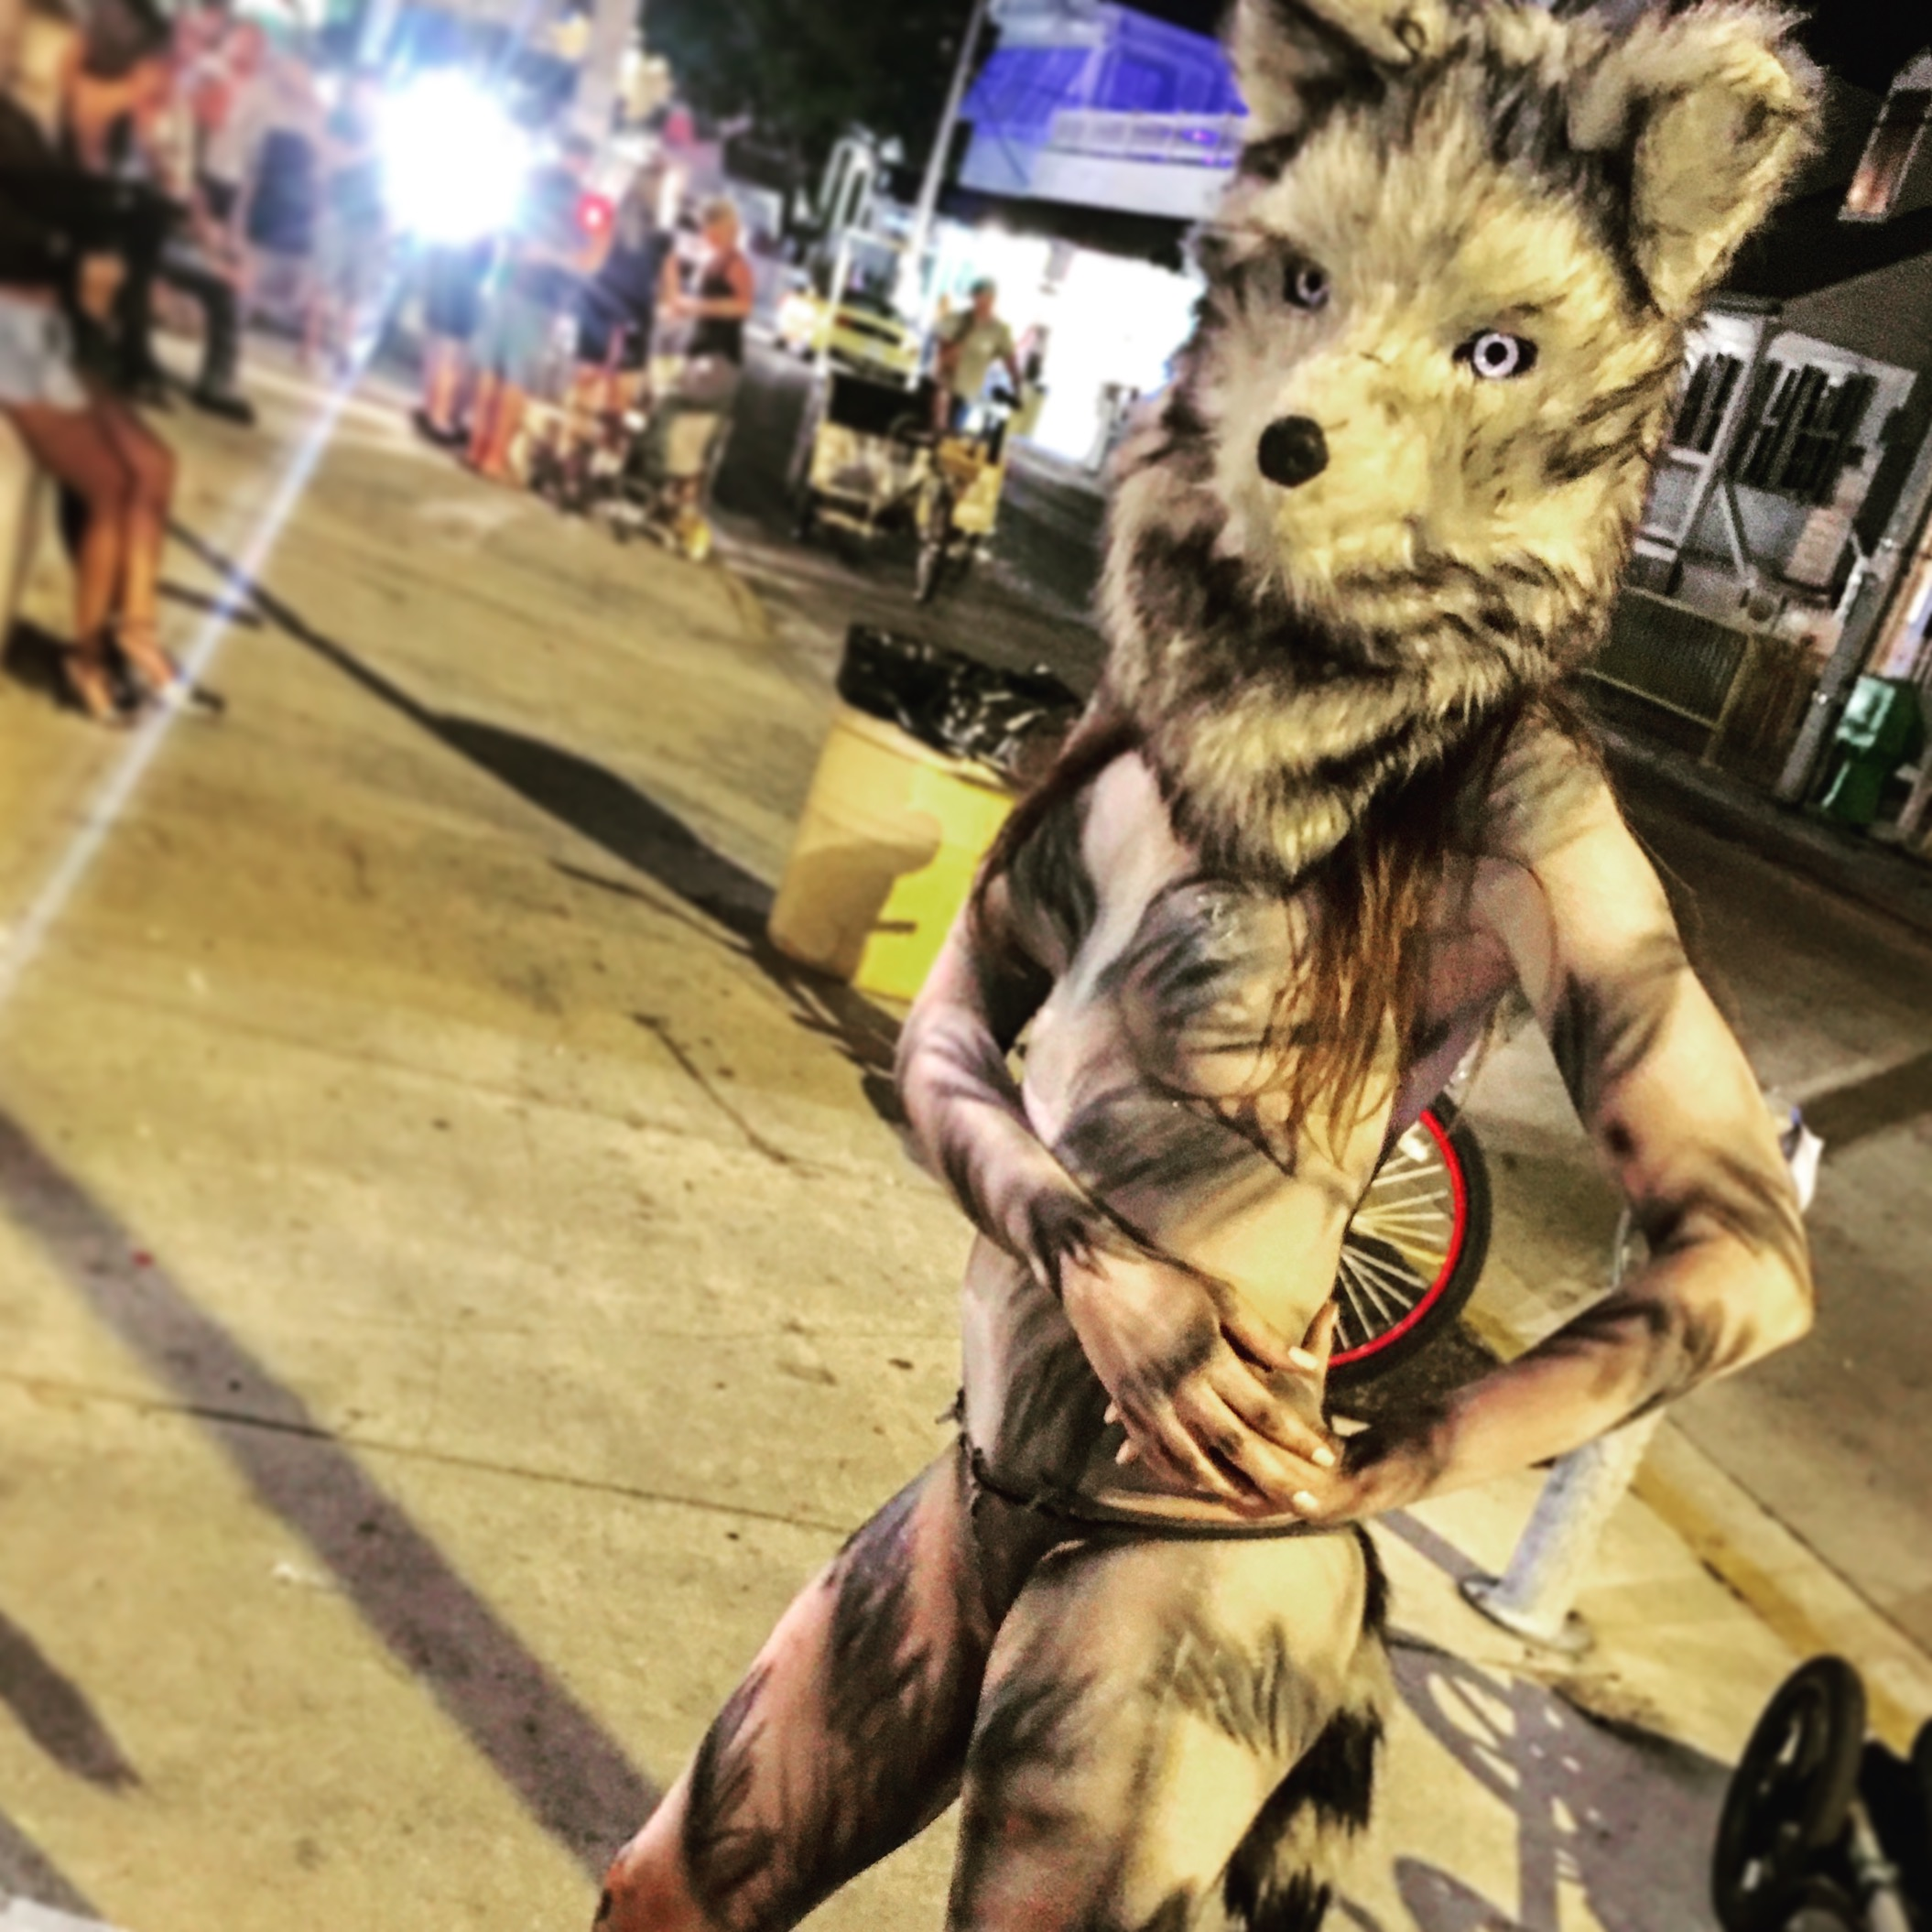 Alessandra Torre in wolf body paint at Fantasy Fest 2016 in Key West - nude closeup